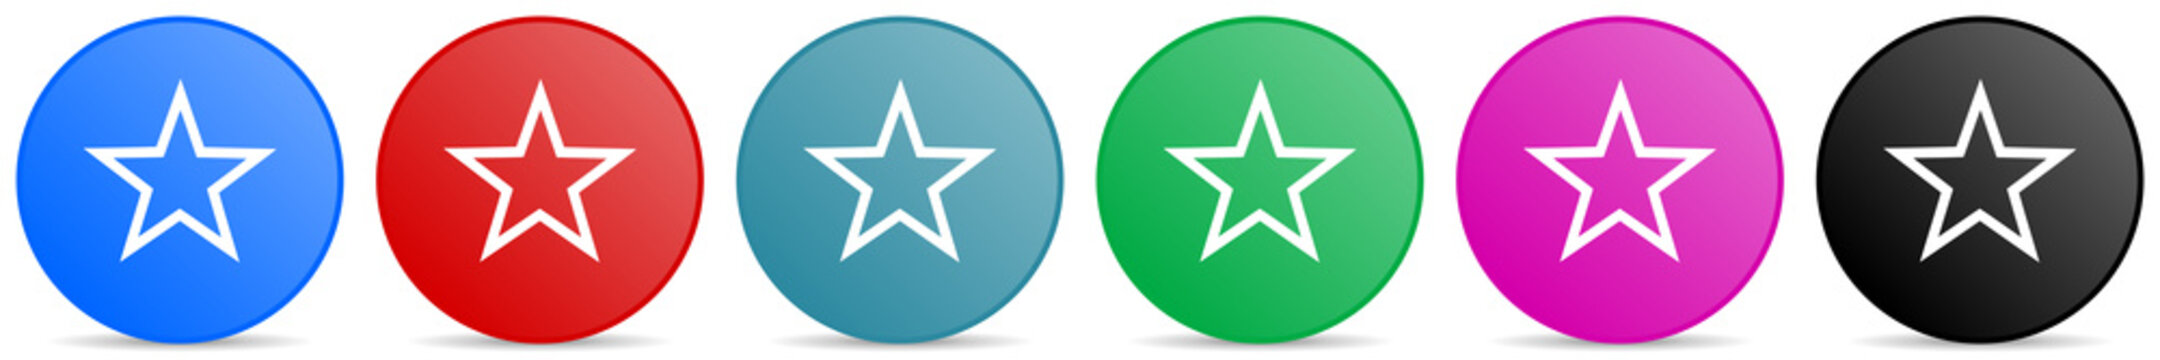 Star vector icons, set of circle gradient buttons in 6 colors options for webdesign and mobile applications